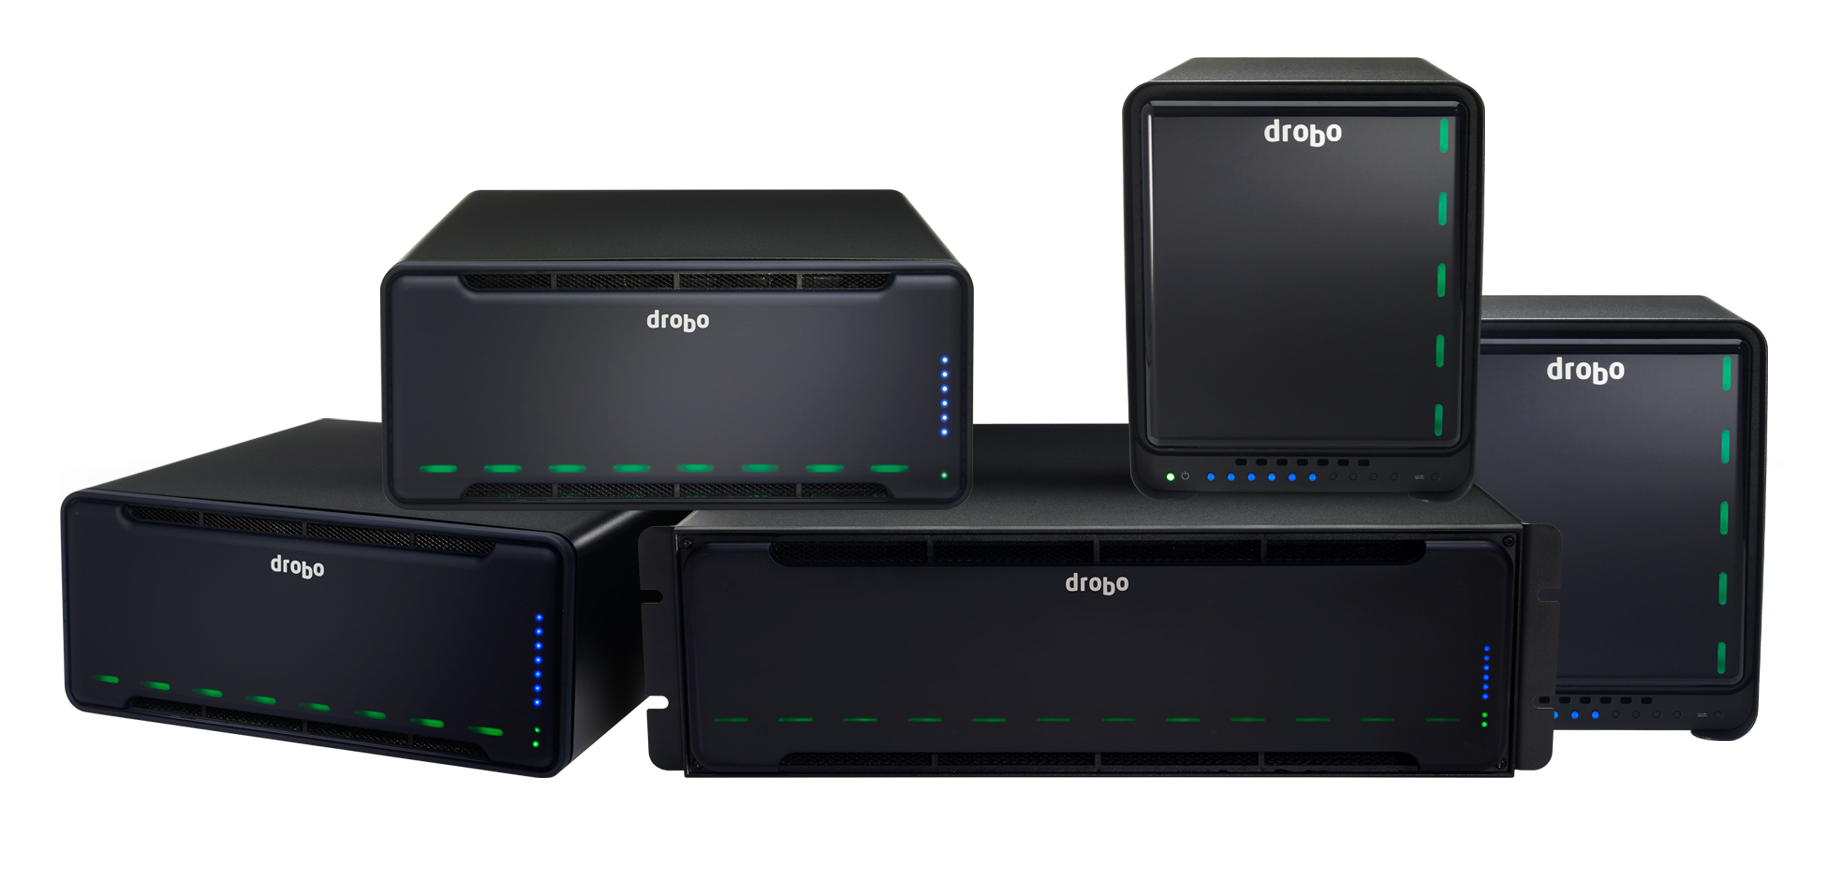 Tri-State Data Recovery is the leader at recovering failed DROBO servers